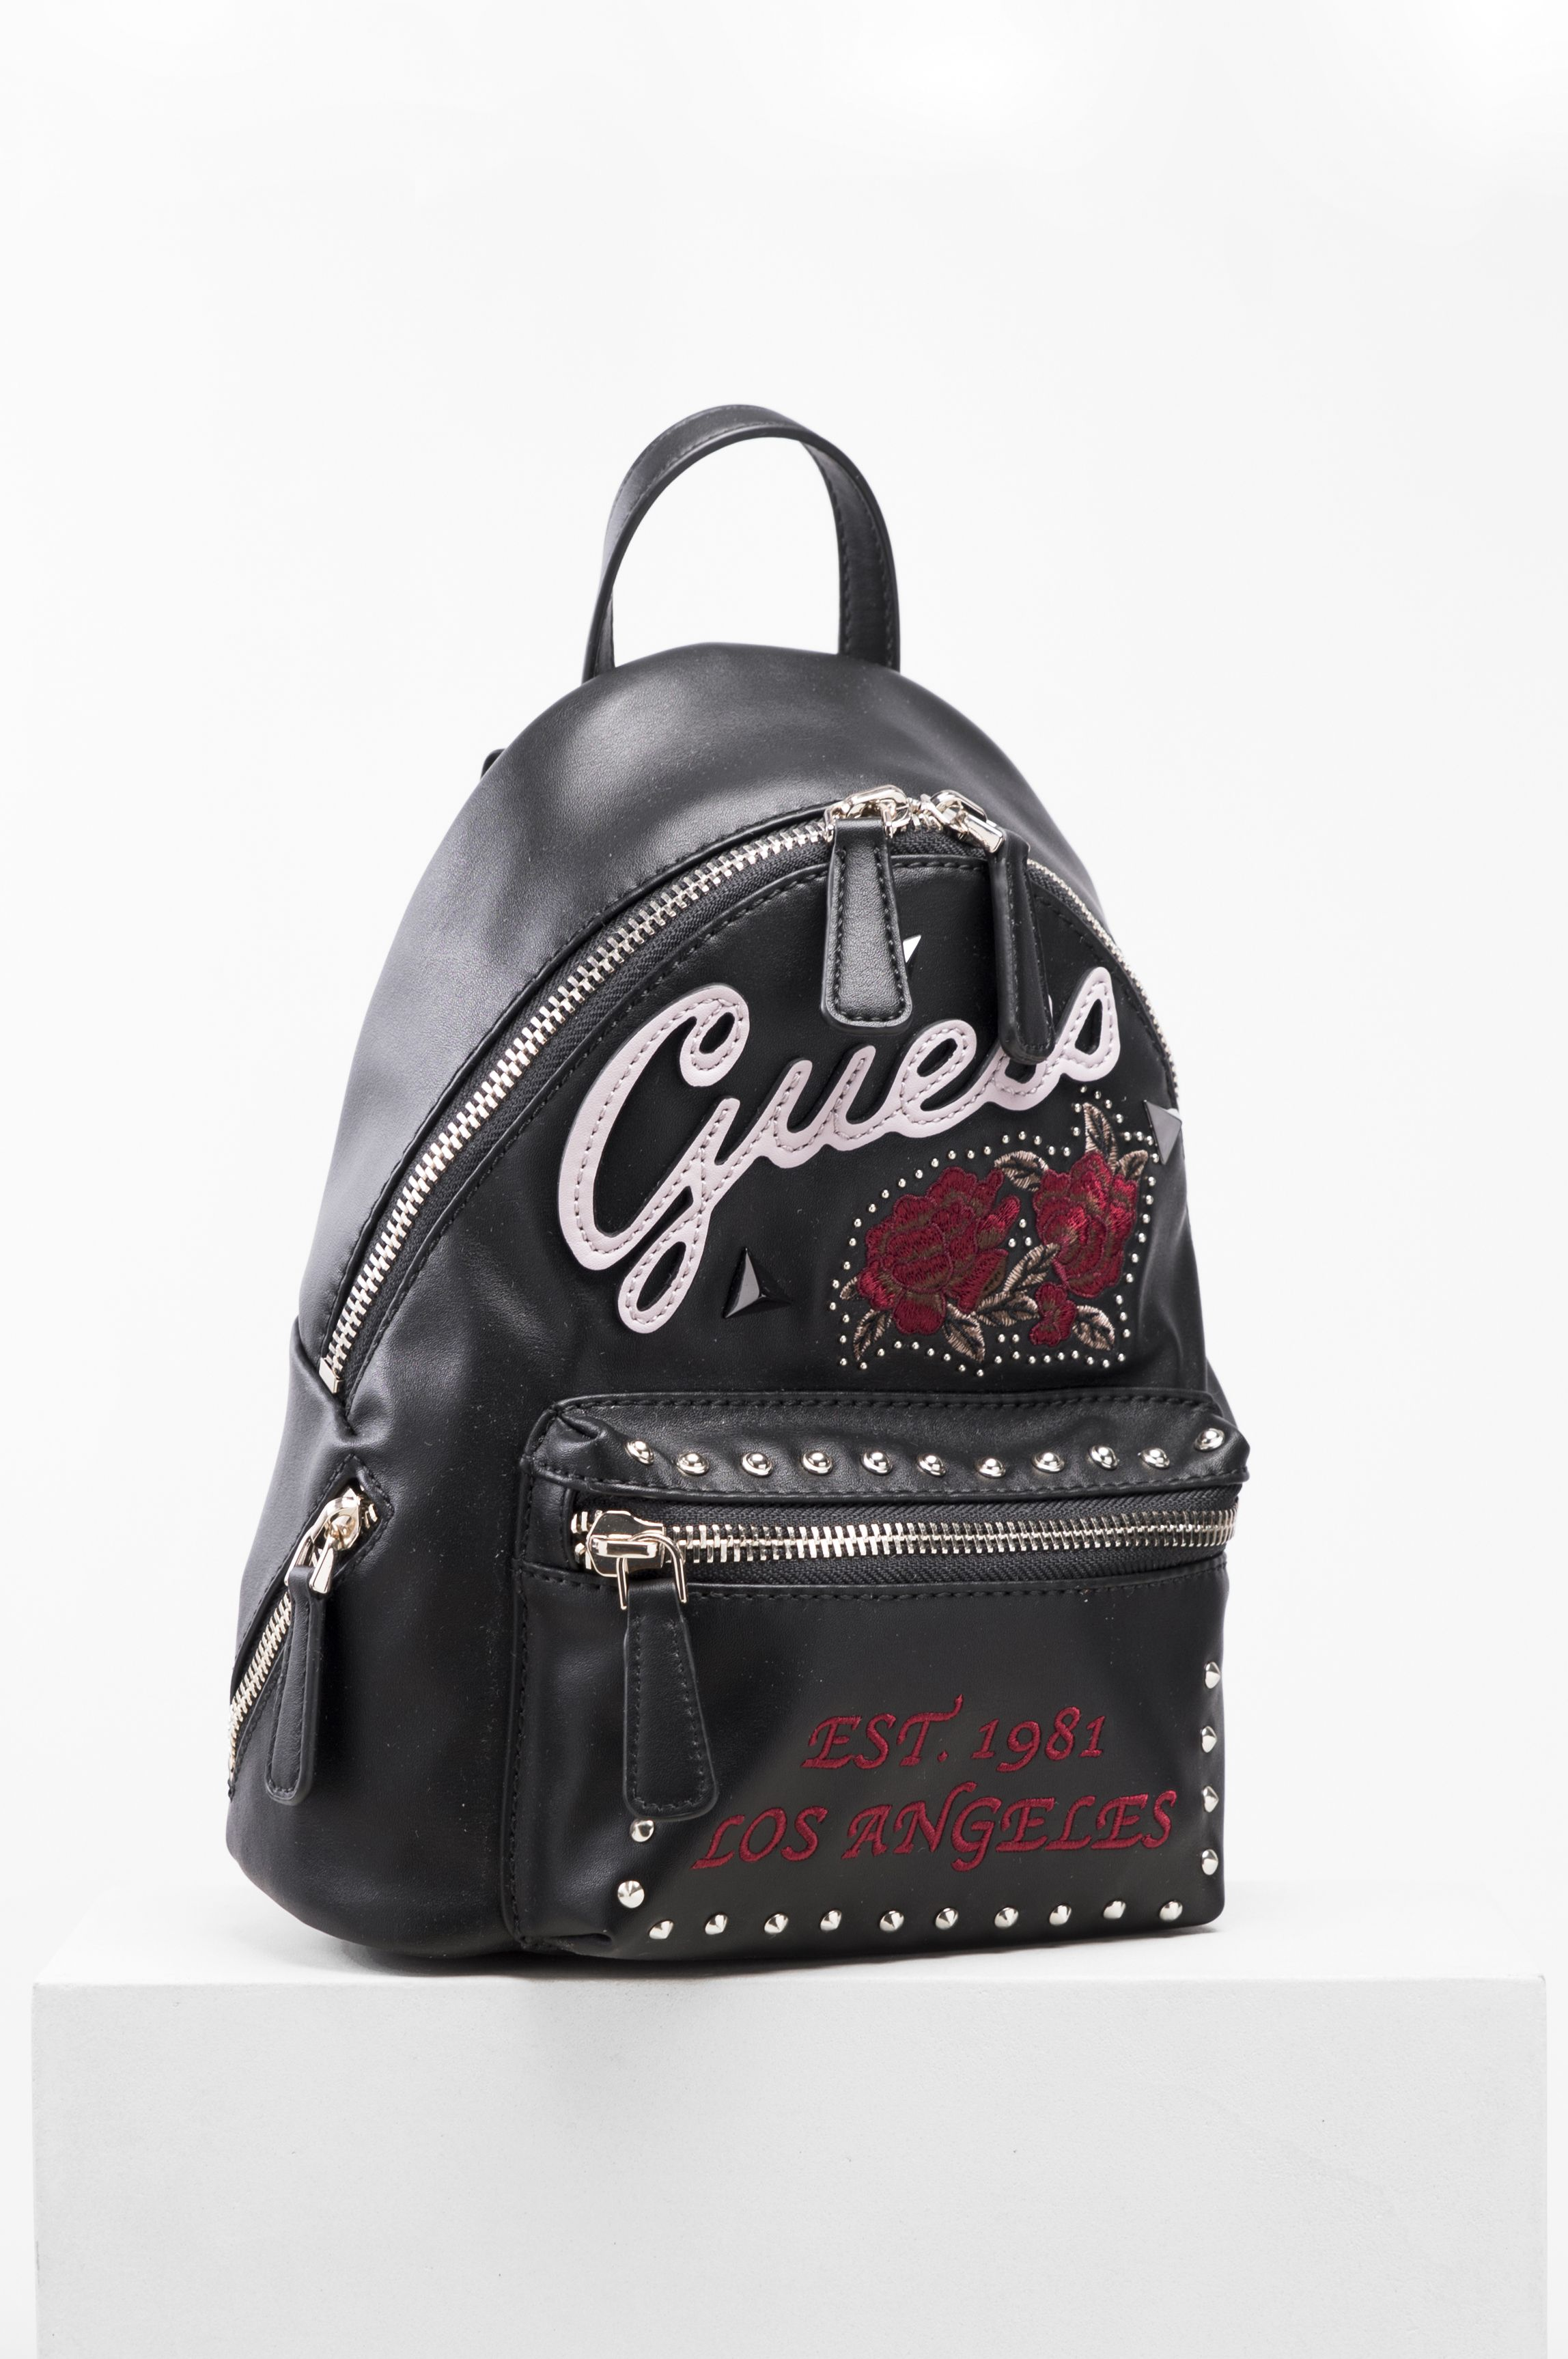 79c3709b1 guess #backpack #black #red #bag #leather | Backpacks in 2019 ...